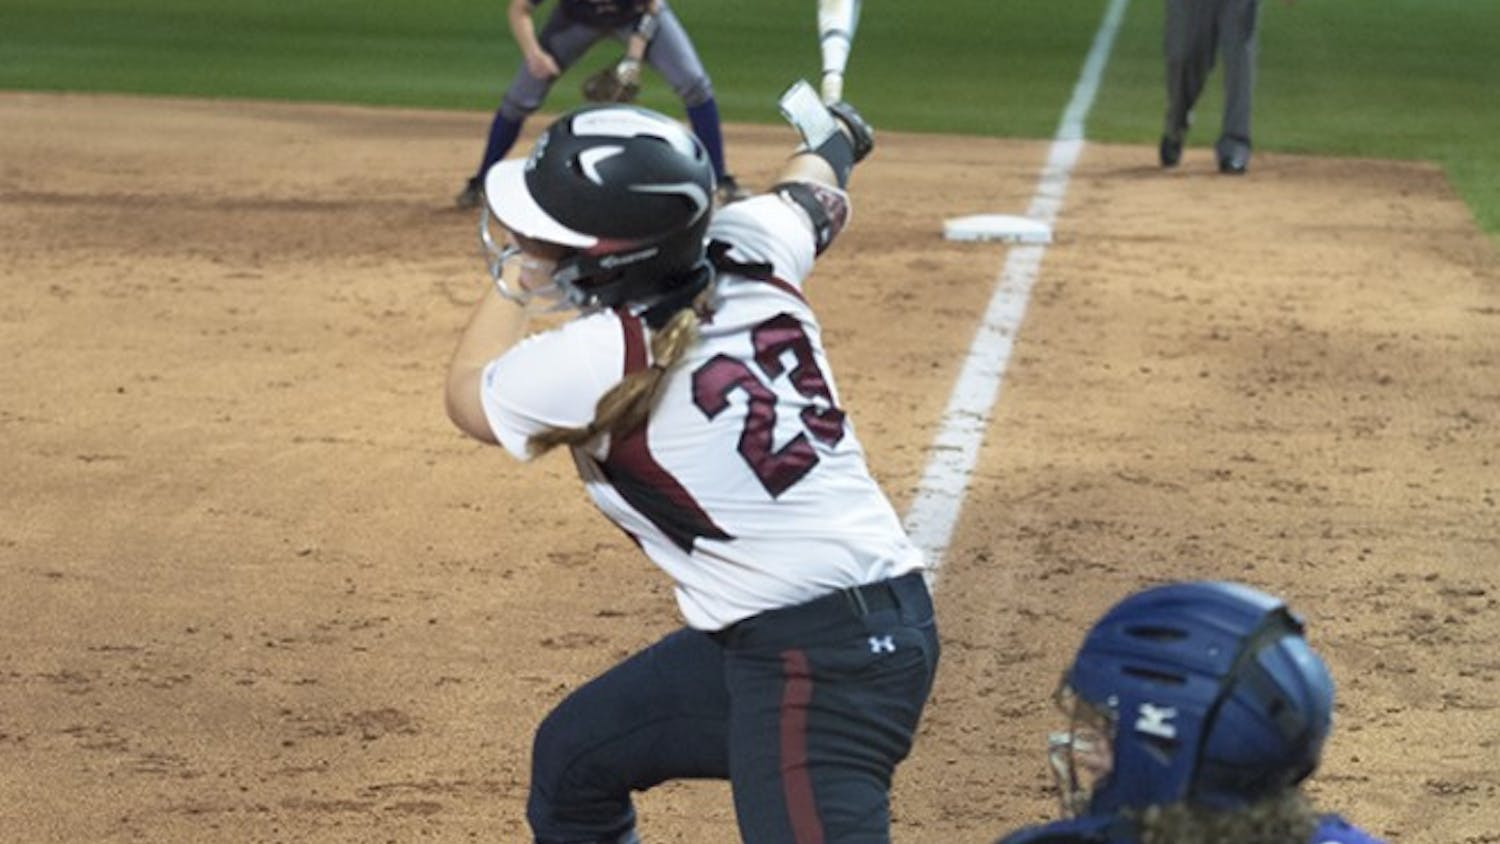 Kennedy Clark recorded two hits in South Carolina's loss to Georgia Southern.